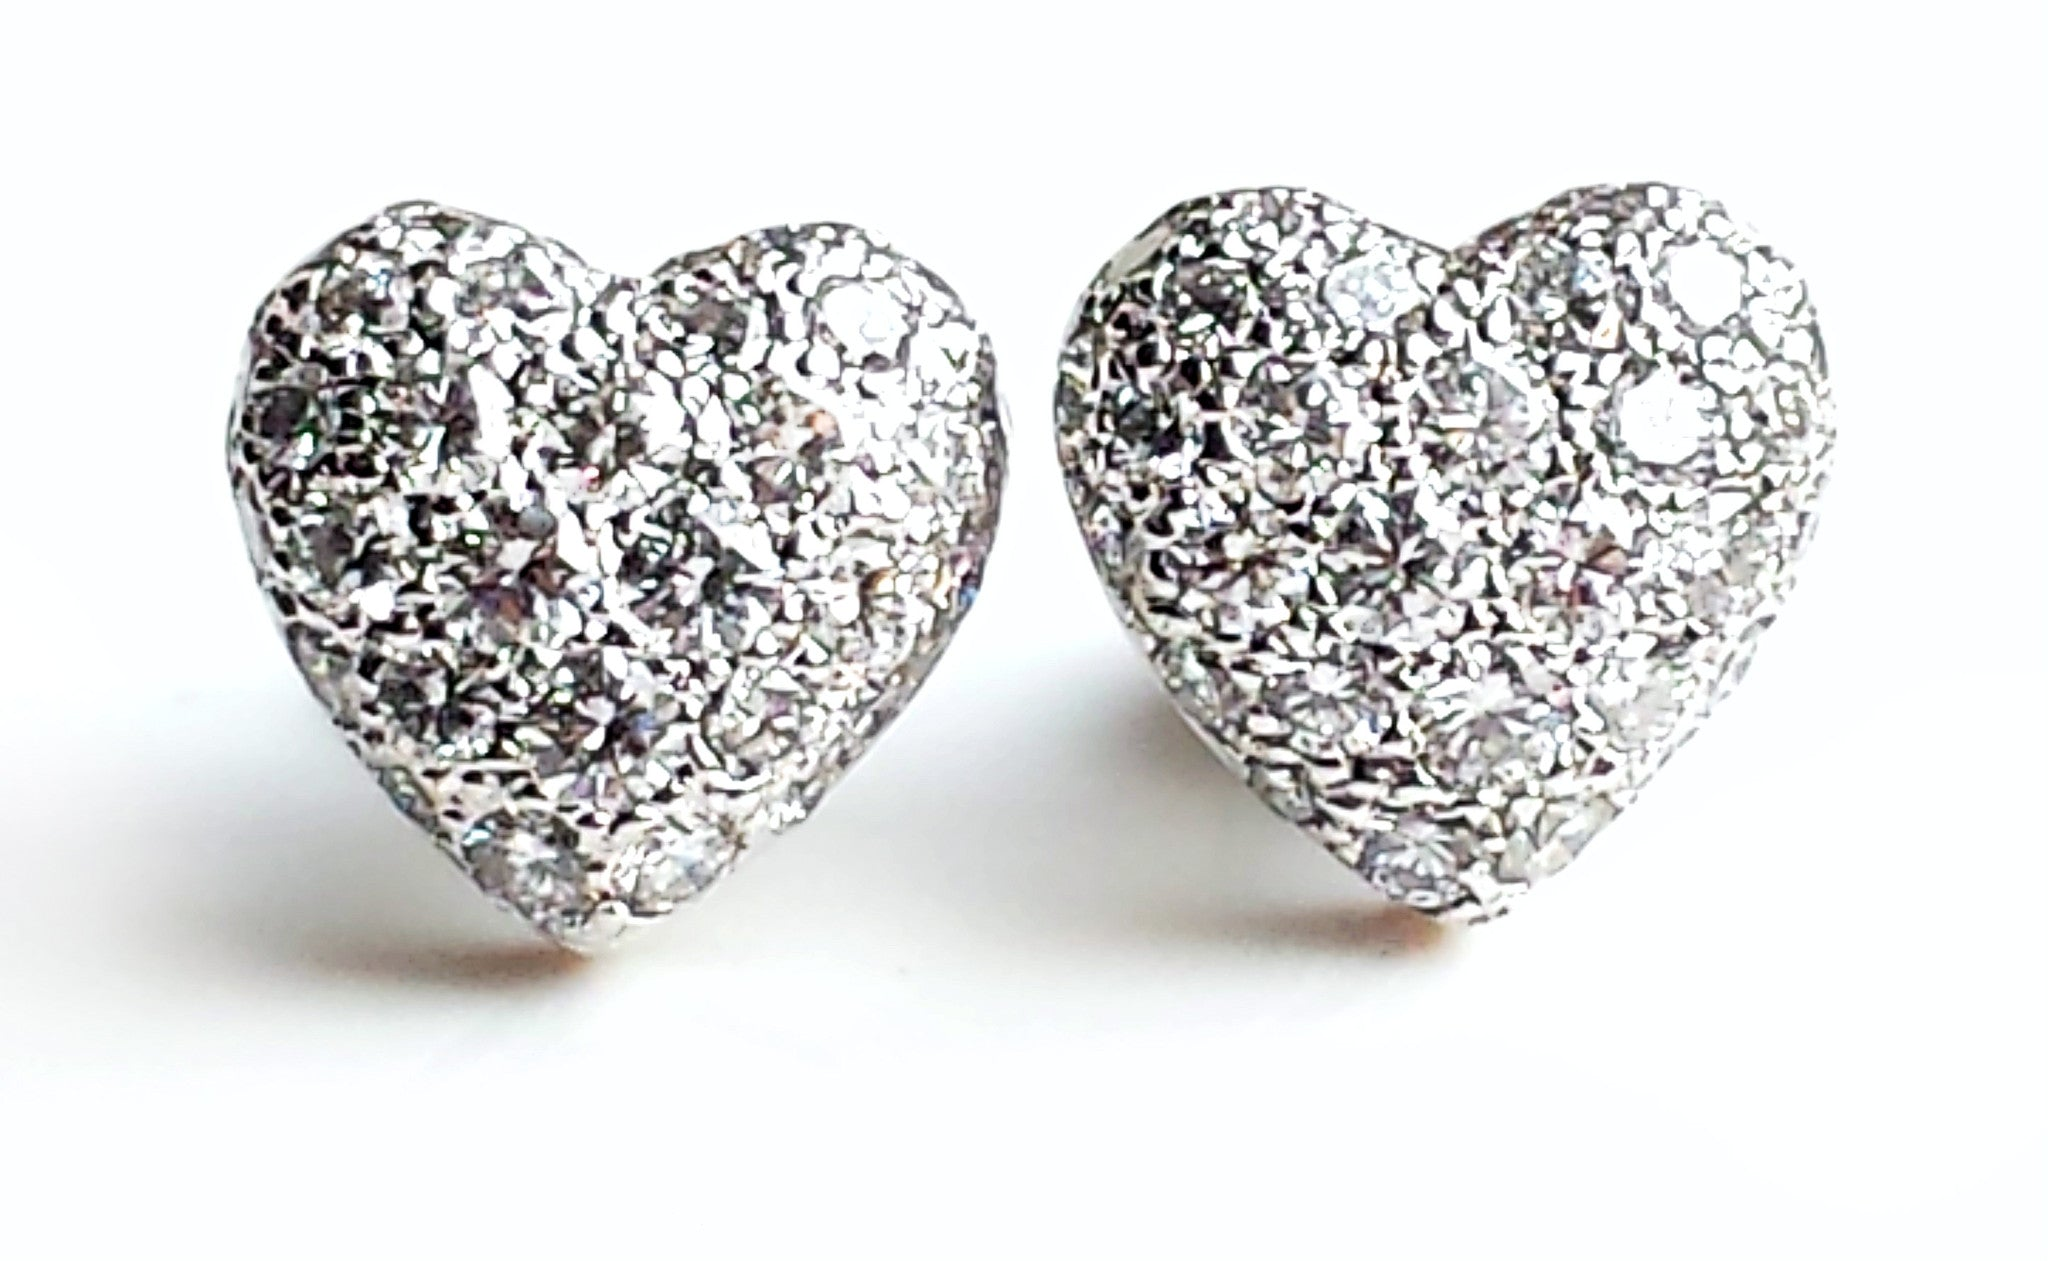 Cartier 1.0tcw Diamond Pavé Set Heart Earrings in 18k White Gold